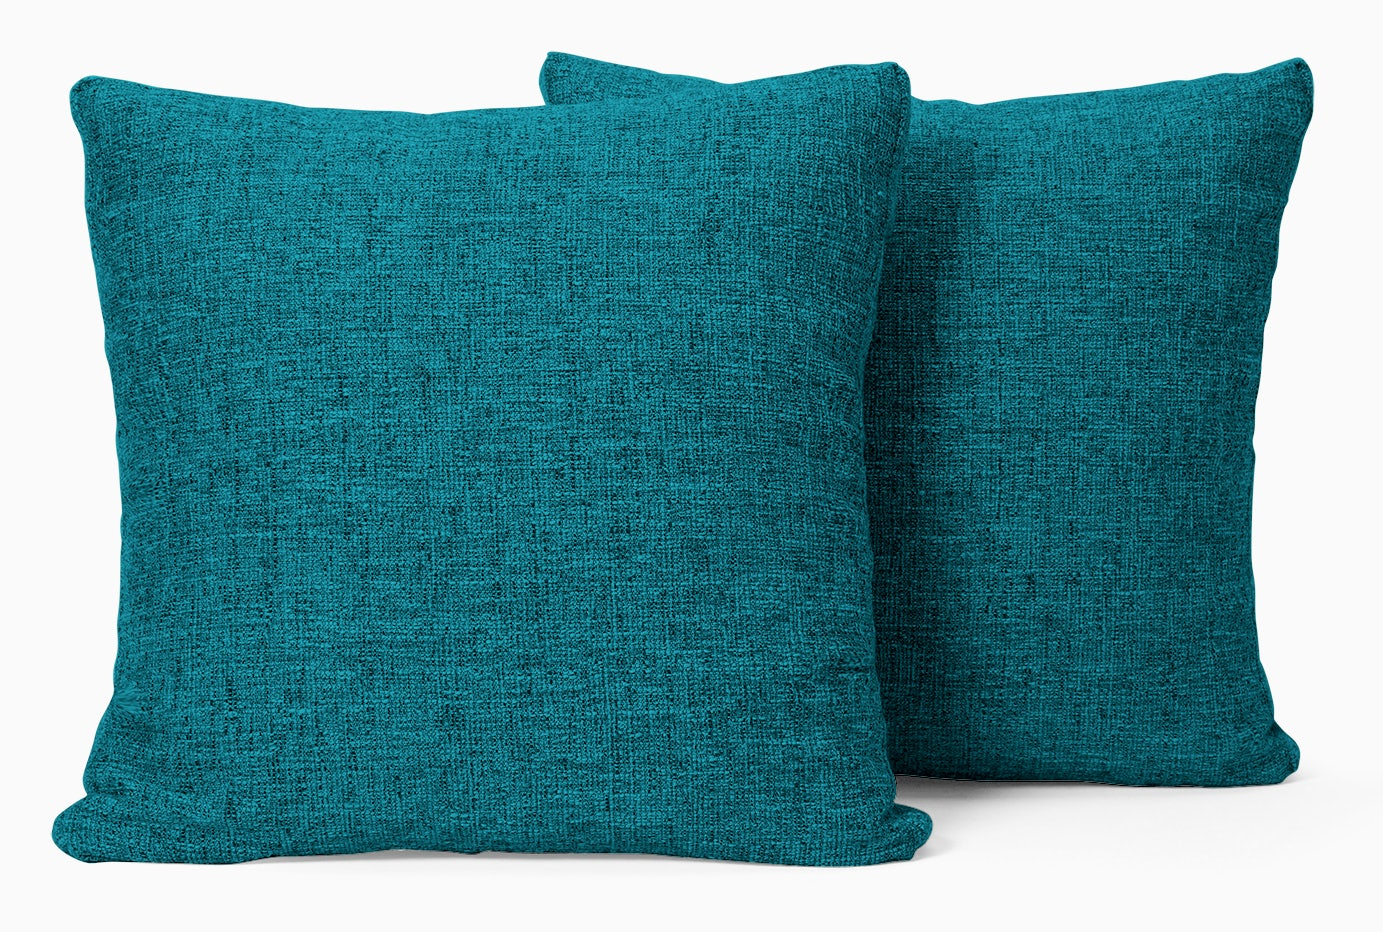 decorative boxed pillows %28set 2%29 vibe aquatic